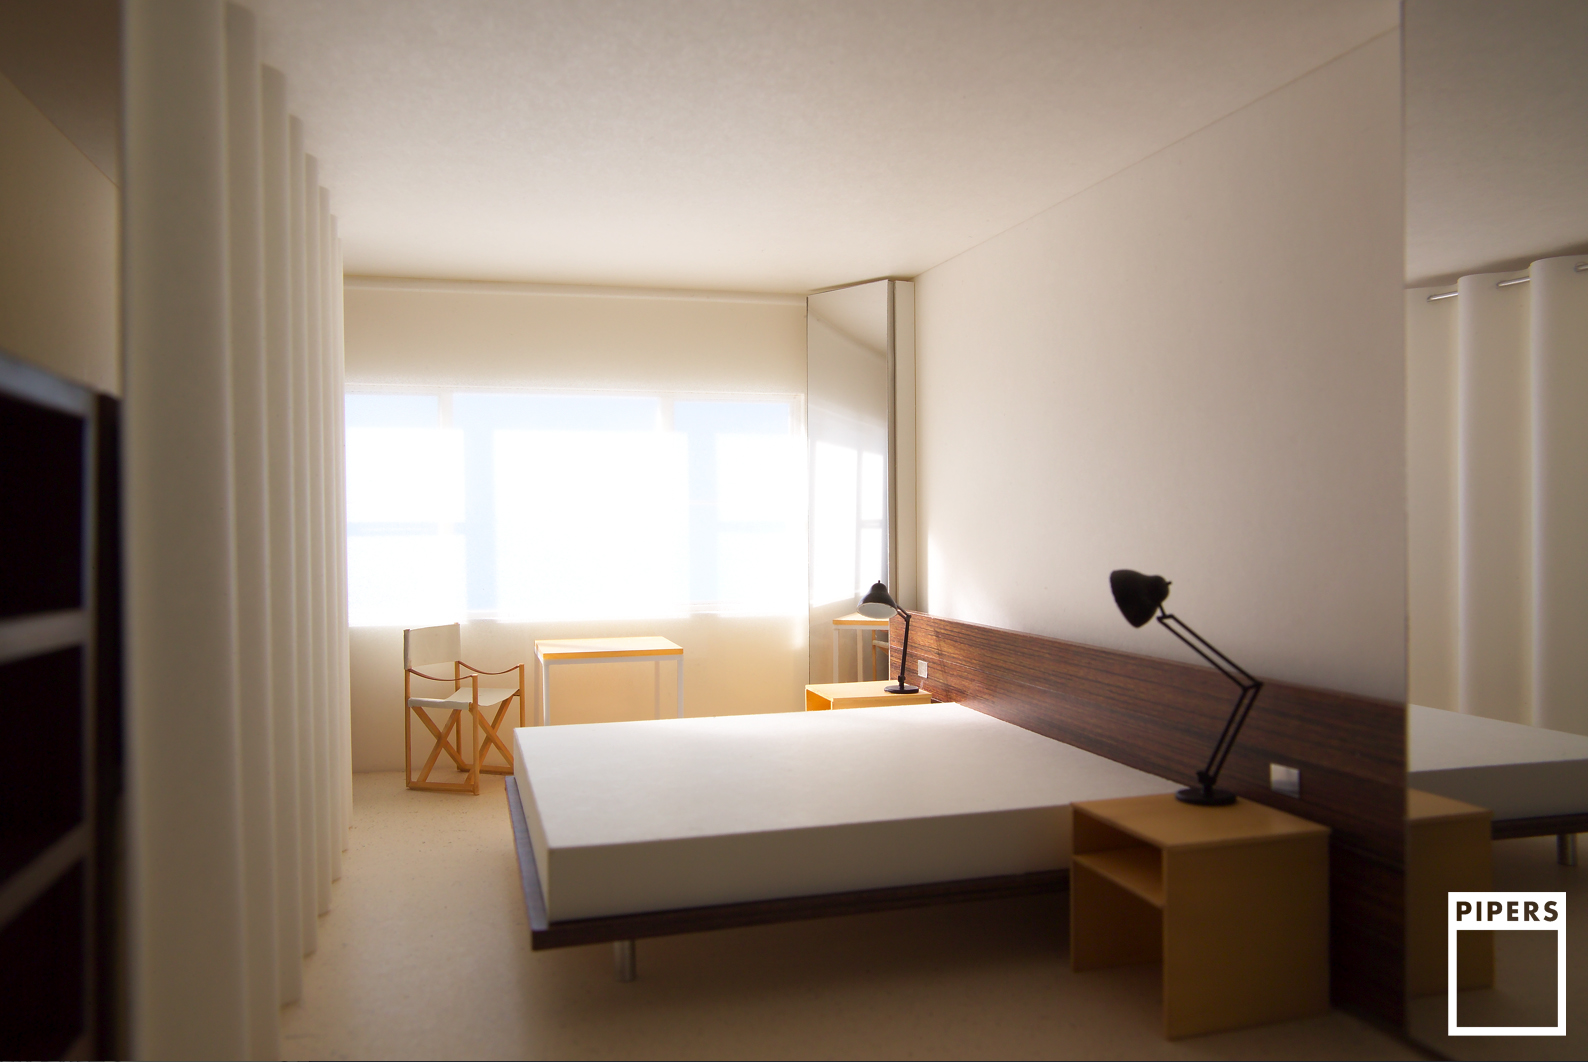 HOTEL ROOM - JOHN PAWSON ARCHITECTS - 1:25 SCALE